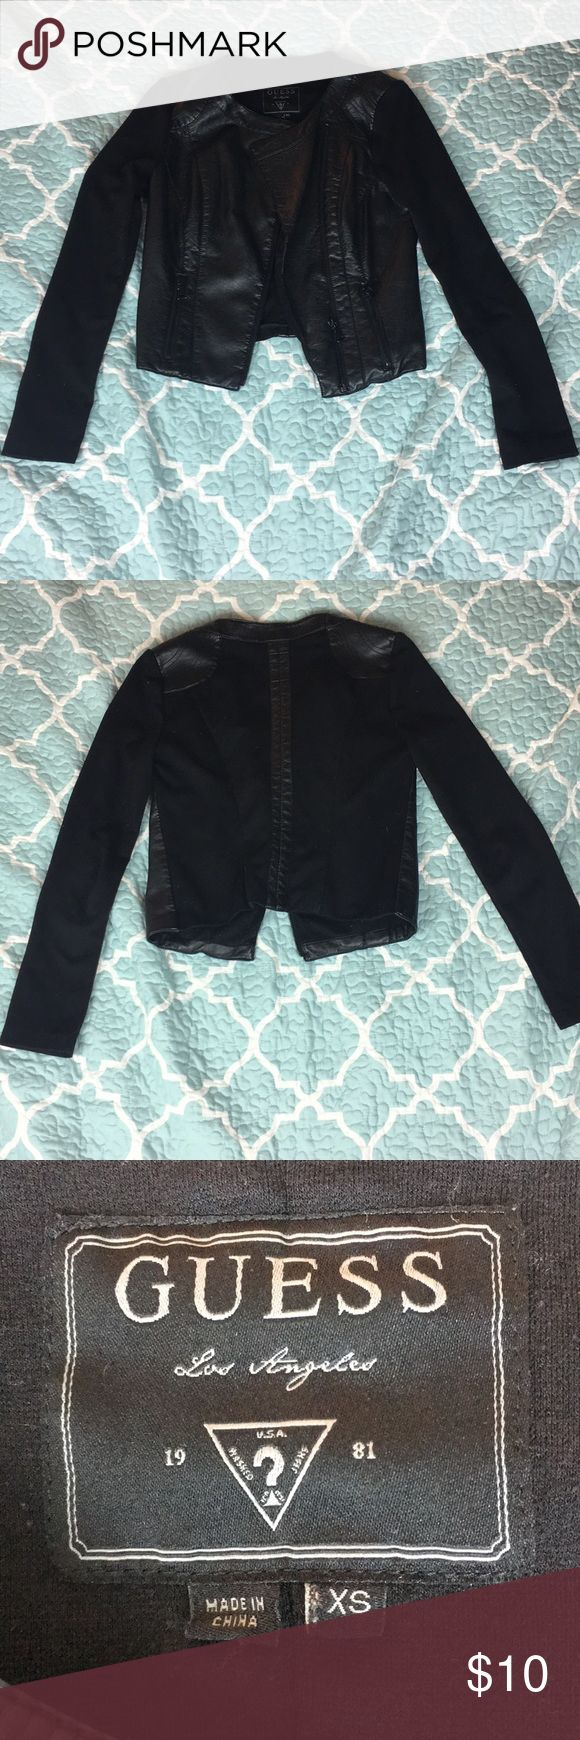 Leather jacket. Used good cond.Guess Jeans XS Smoke free home. Good condition (because it has usage) but overall a great buy. Leather and cotton. Guess brand designer. Size extra small Guess Jackets & Coats